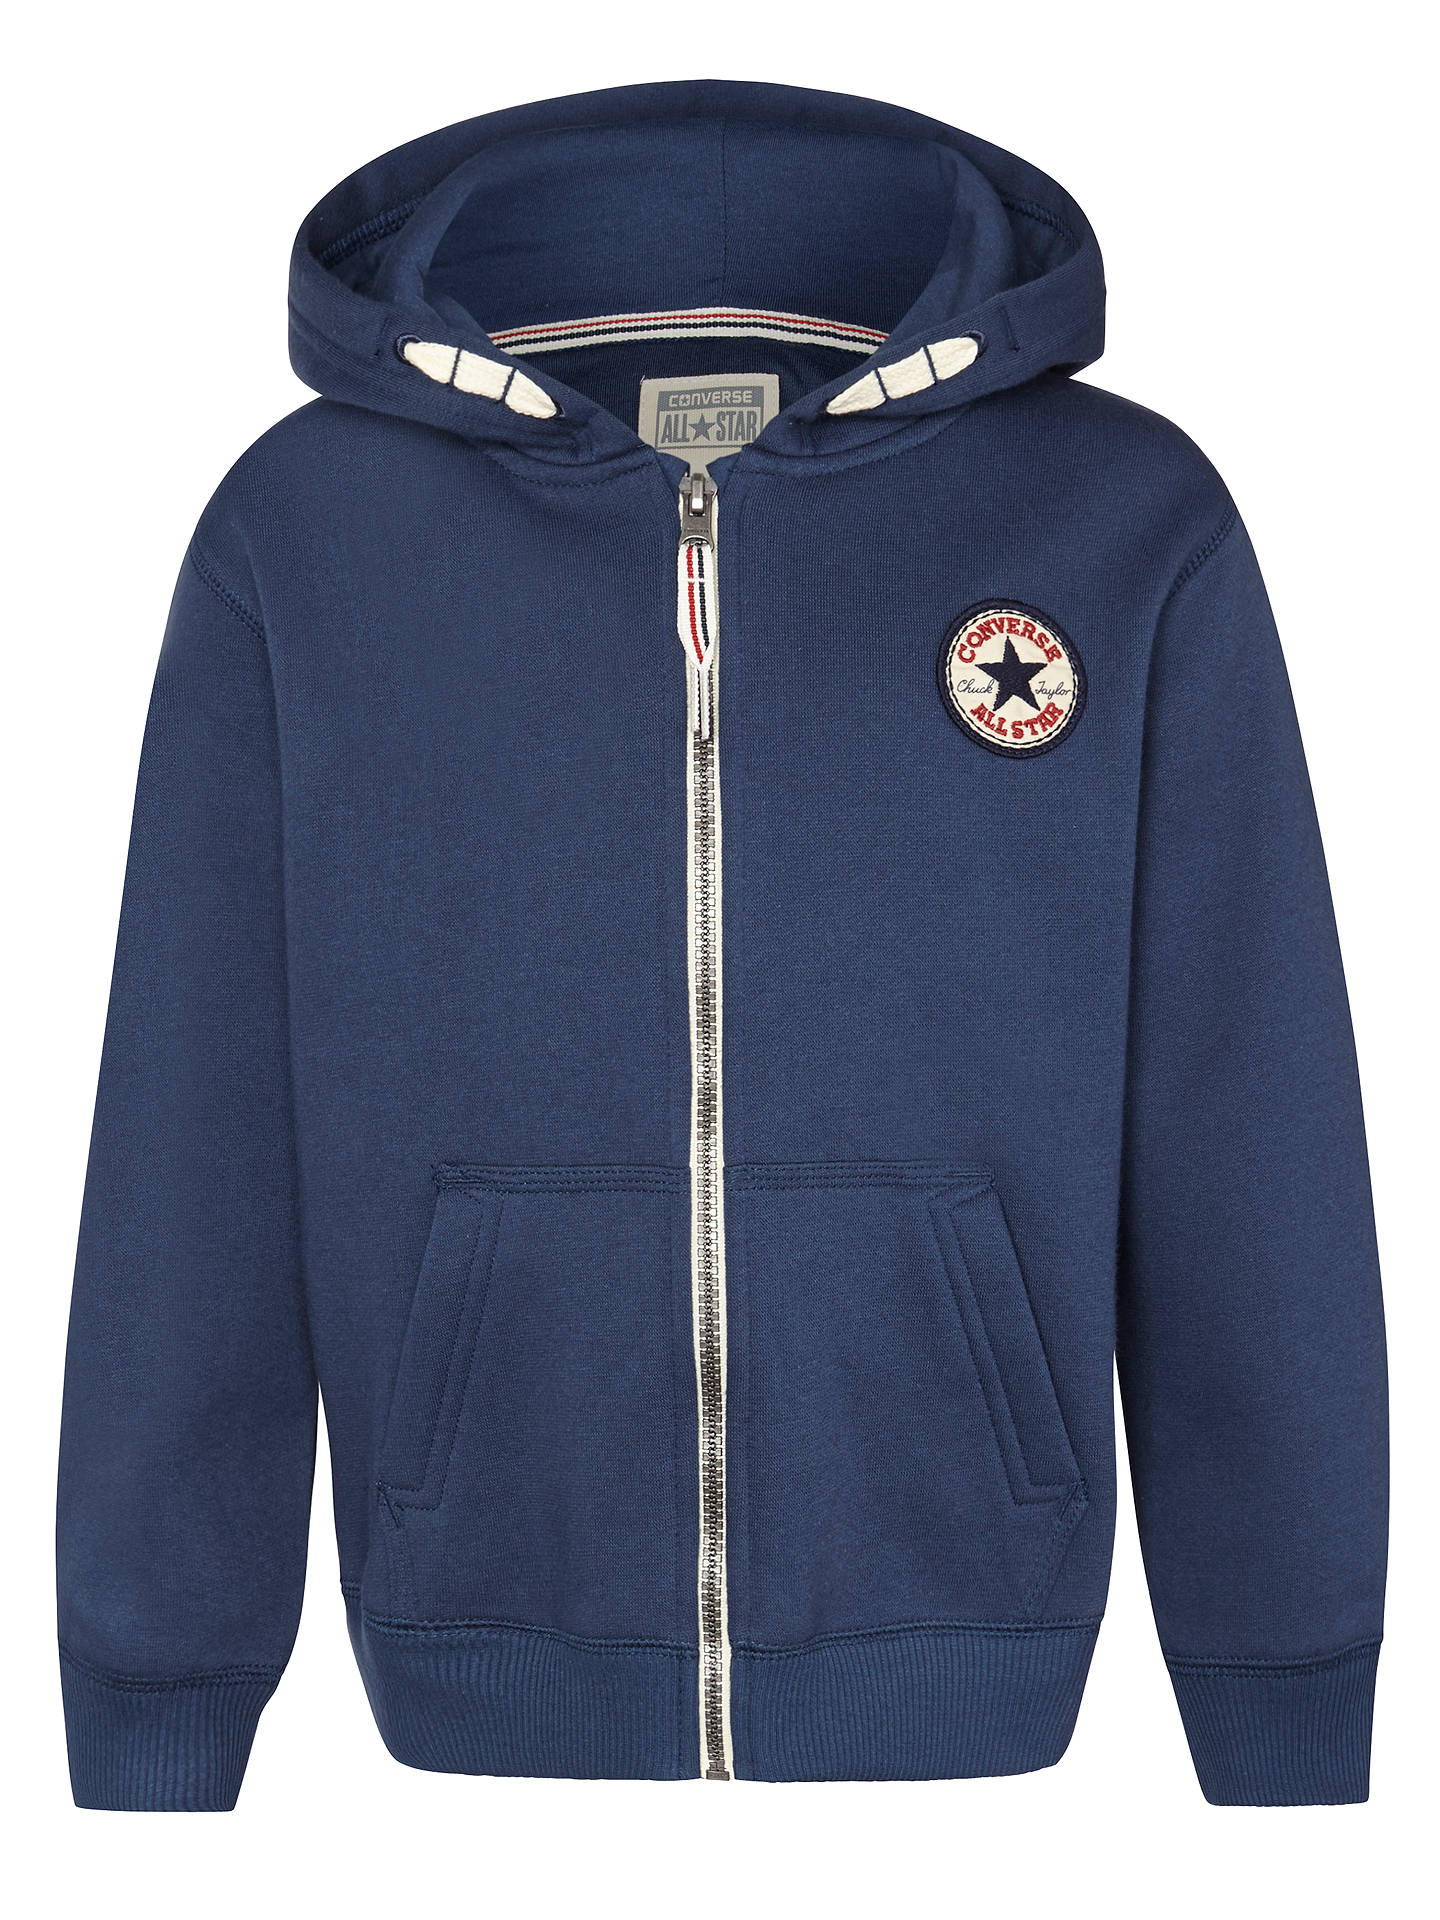 Converse All Star Zip Hoodie at John Lewis   Partners e6b2f0ceee3f